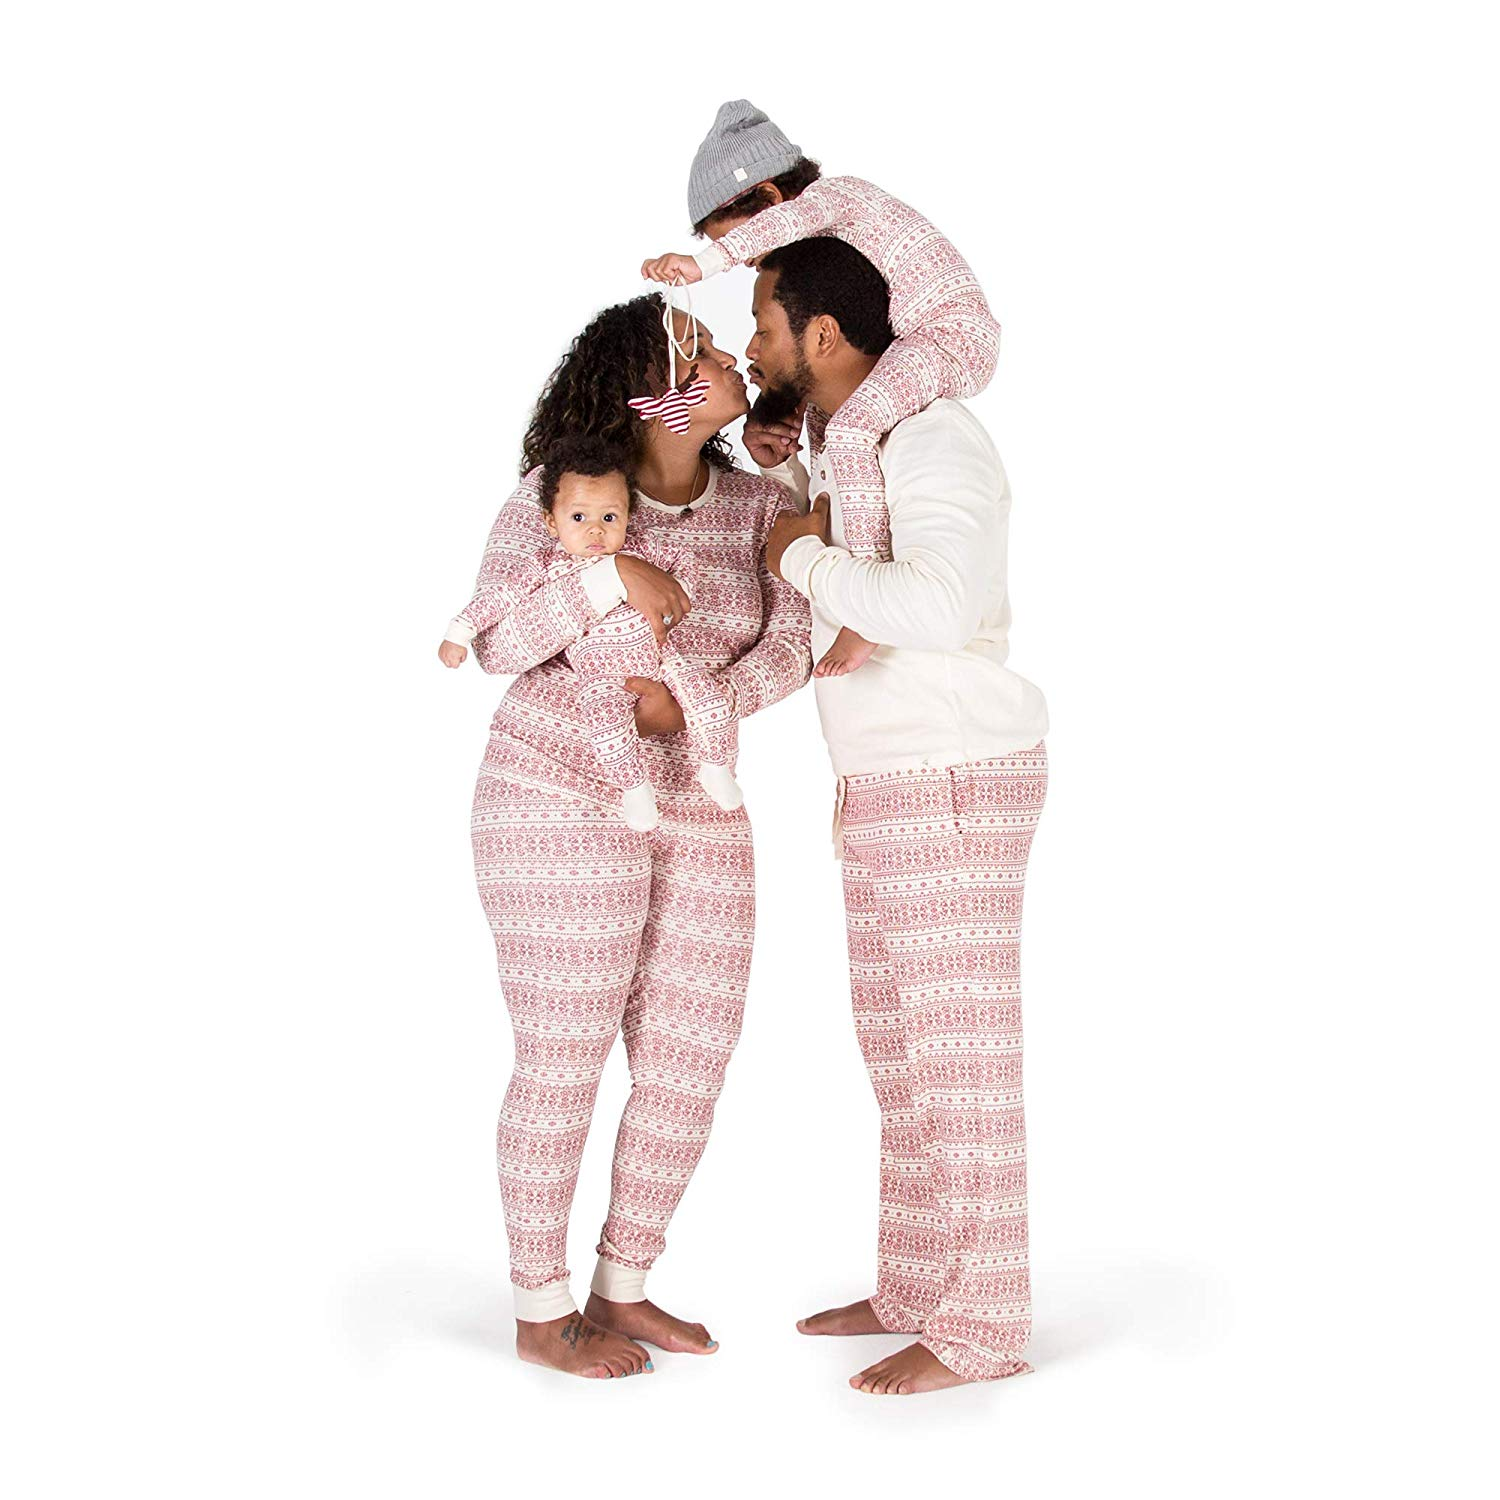 The Cutest Matching Holiday Pajamas For the Entire Family - Burt's Bees Fair Isle Holiday Jammies